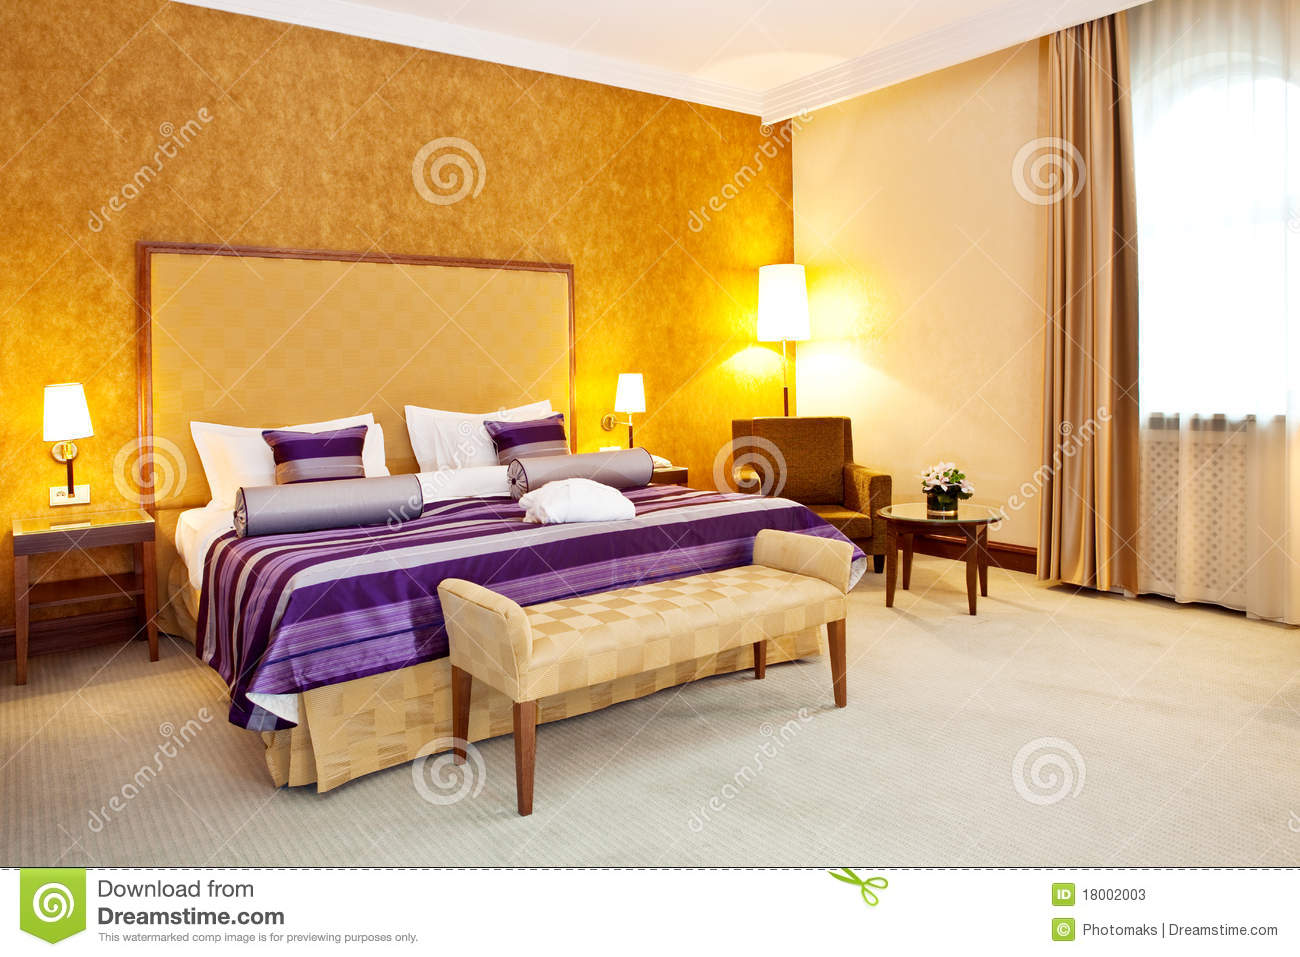 Hotel Rooms Interior hotel room interior royalty free stock photo - image: 15552935